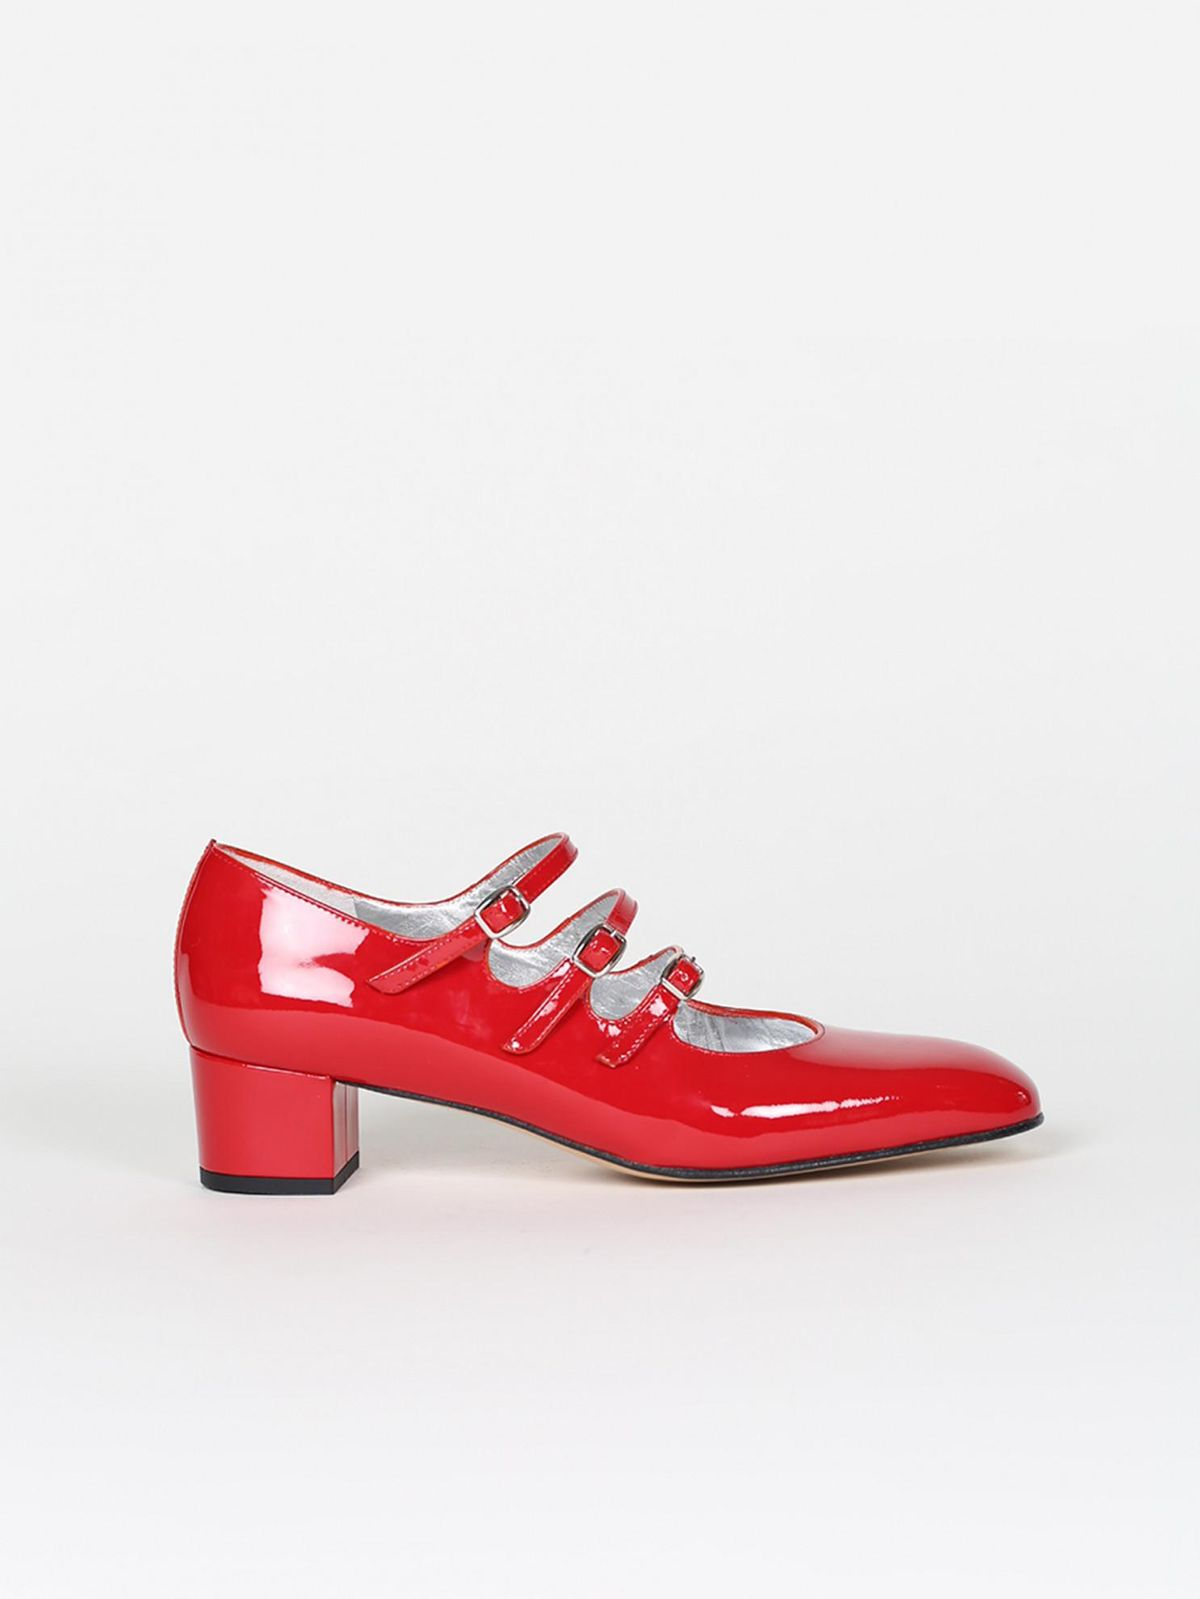 carel paris red patent leather mary janes